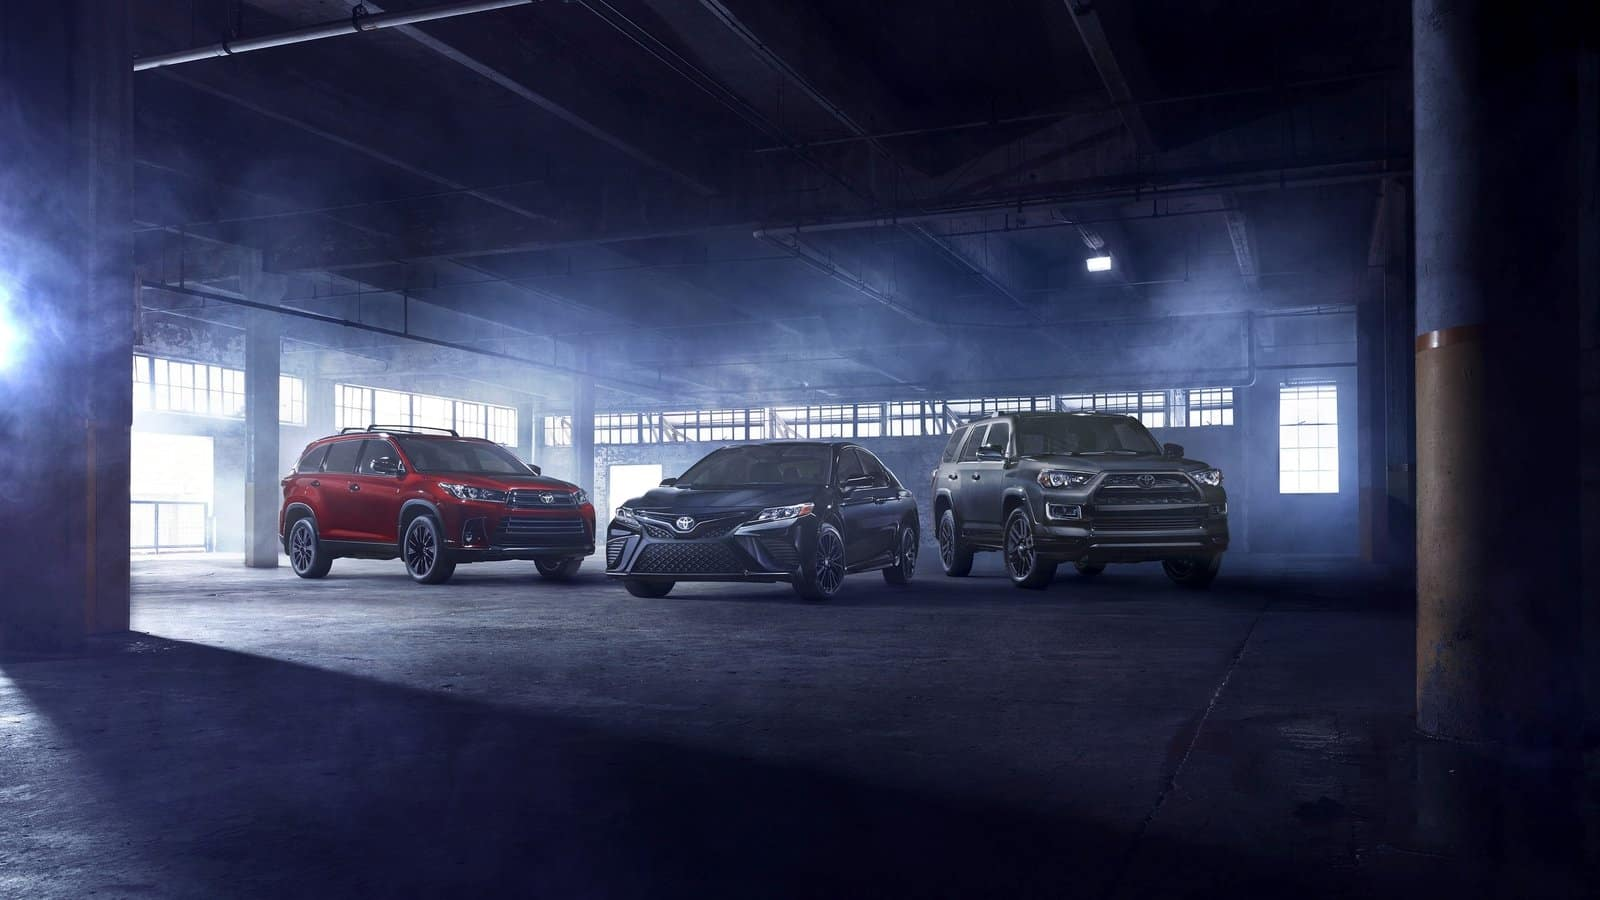 2019 Toyota Camry And Toyota Highlander Get Nightshade Treatment